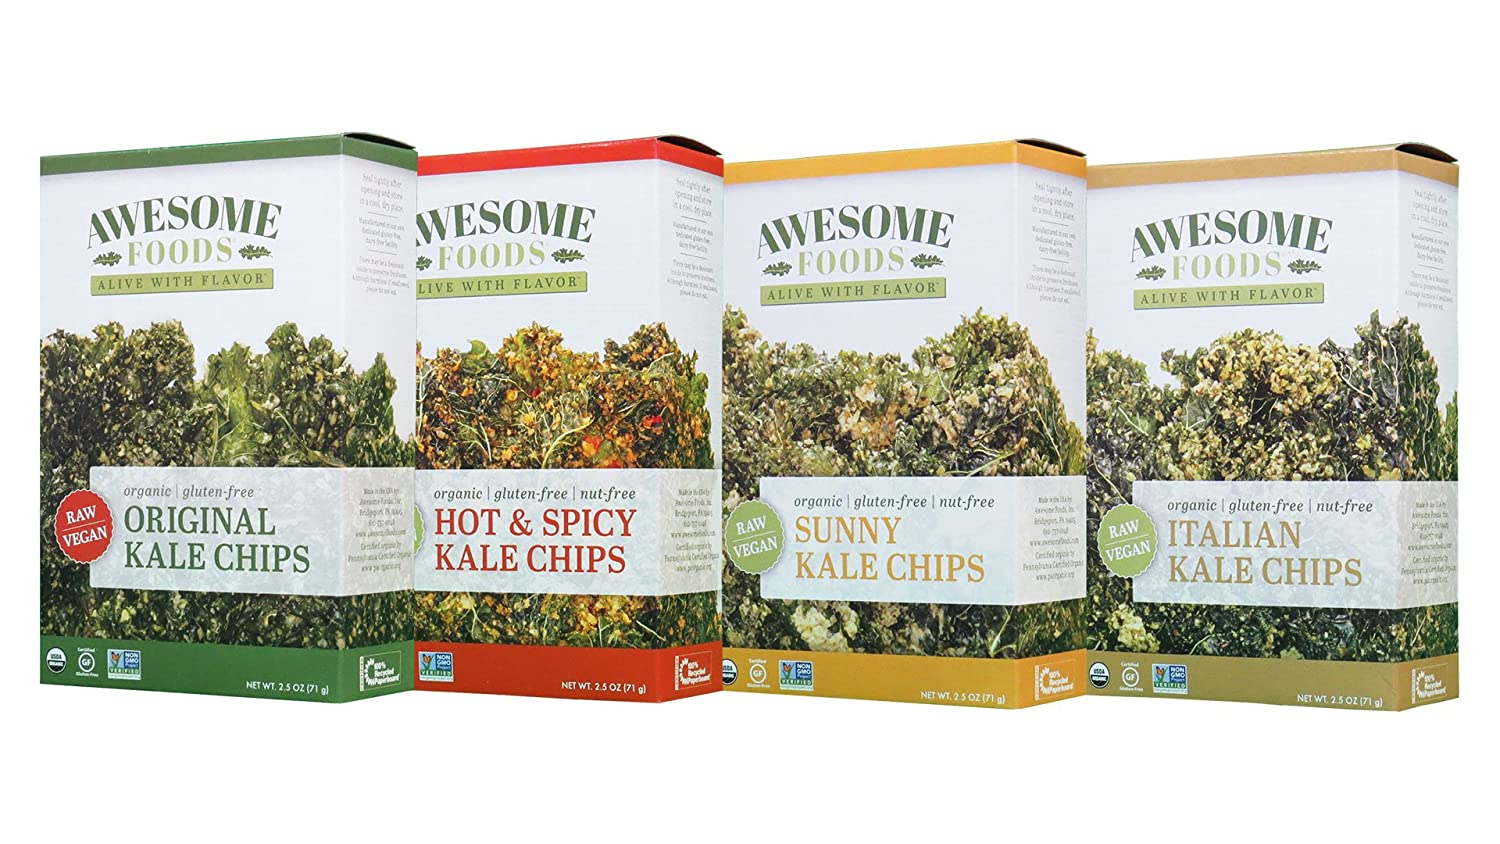 Awesome Foods, Organic, Gluten-Free, Plant-based, Non-GMO, Kale Chip Variety 8 Pack